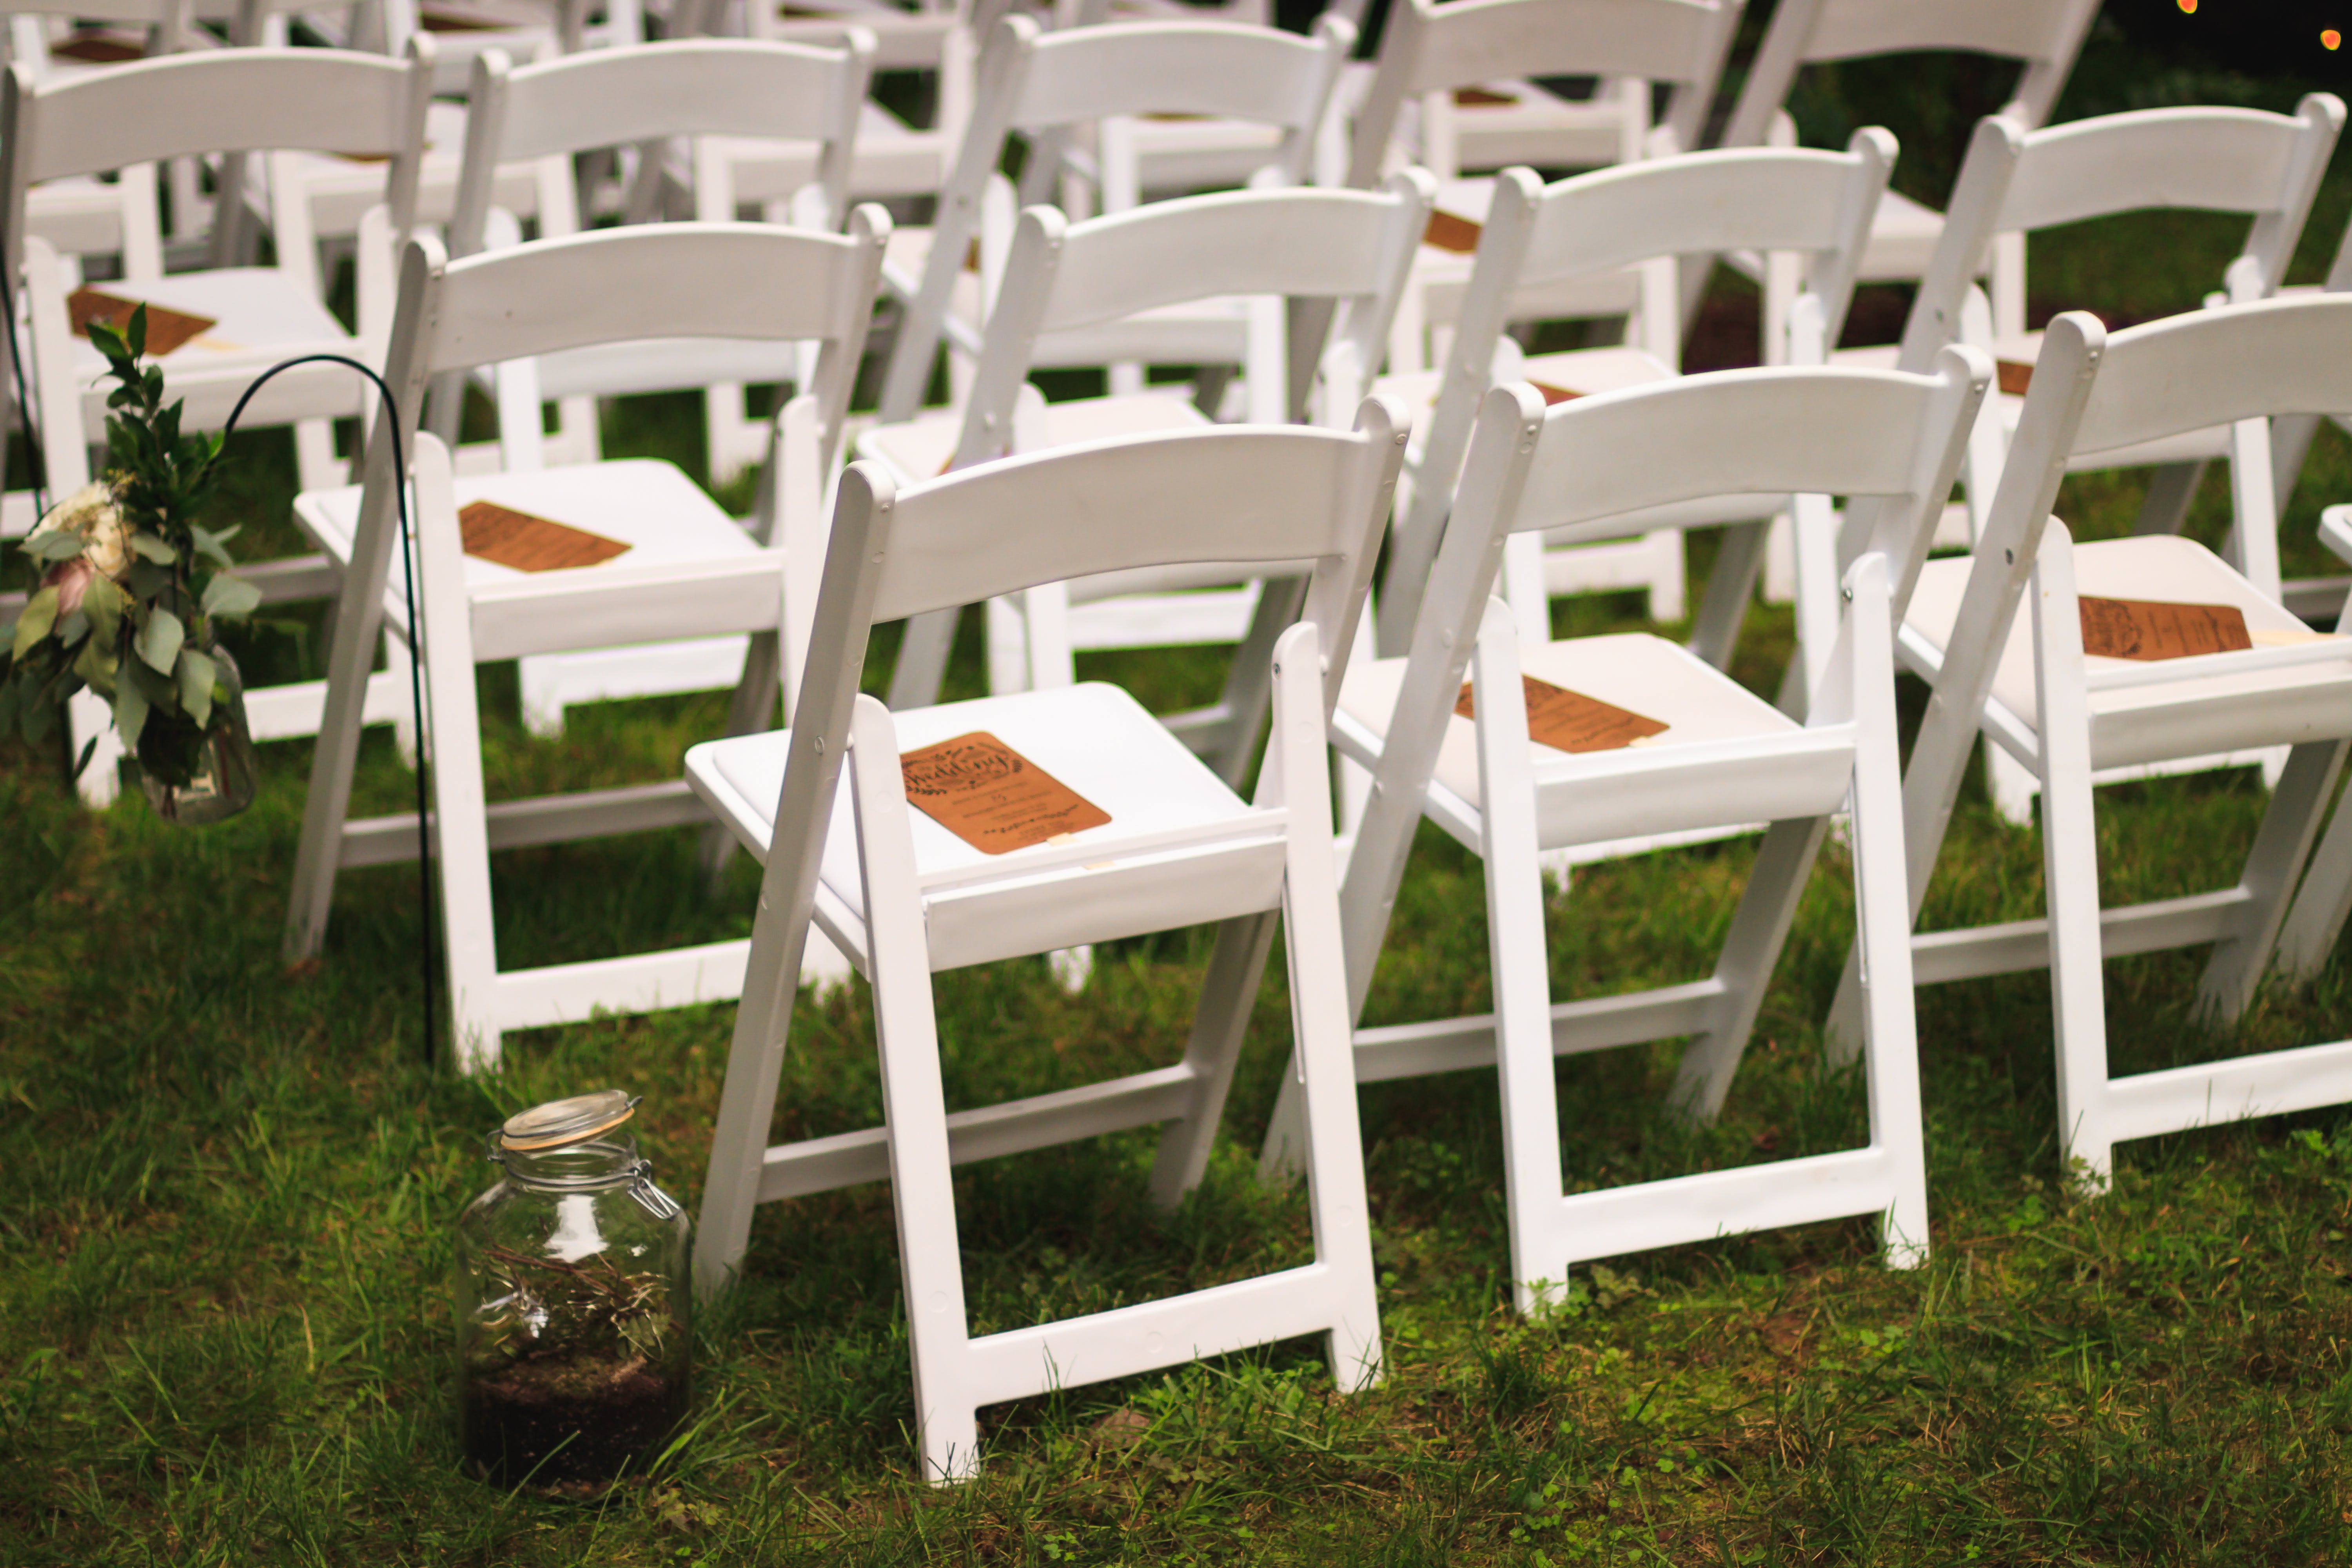 White Wooden Chairs on Green Grass Field